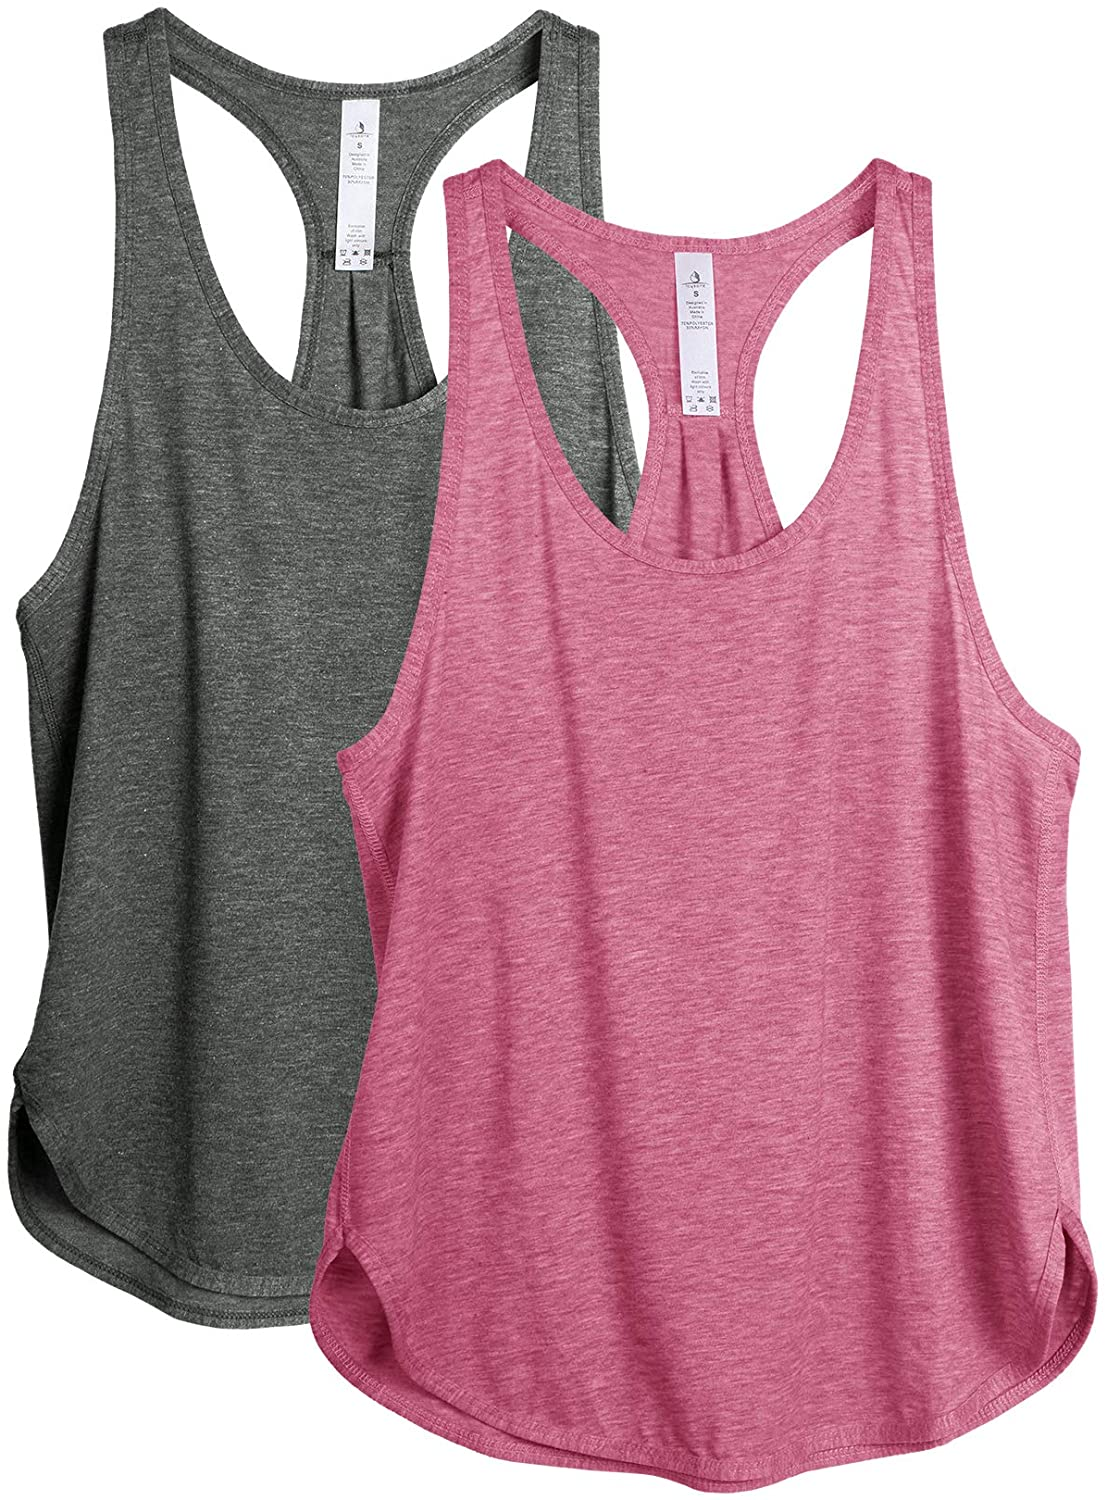 icyzone Workout Tank Tops for Women - Athletic Yoga Tops, Racerback Running Tank Top(Pack of 2) : Sports & Outdoors